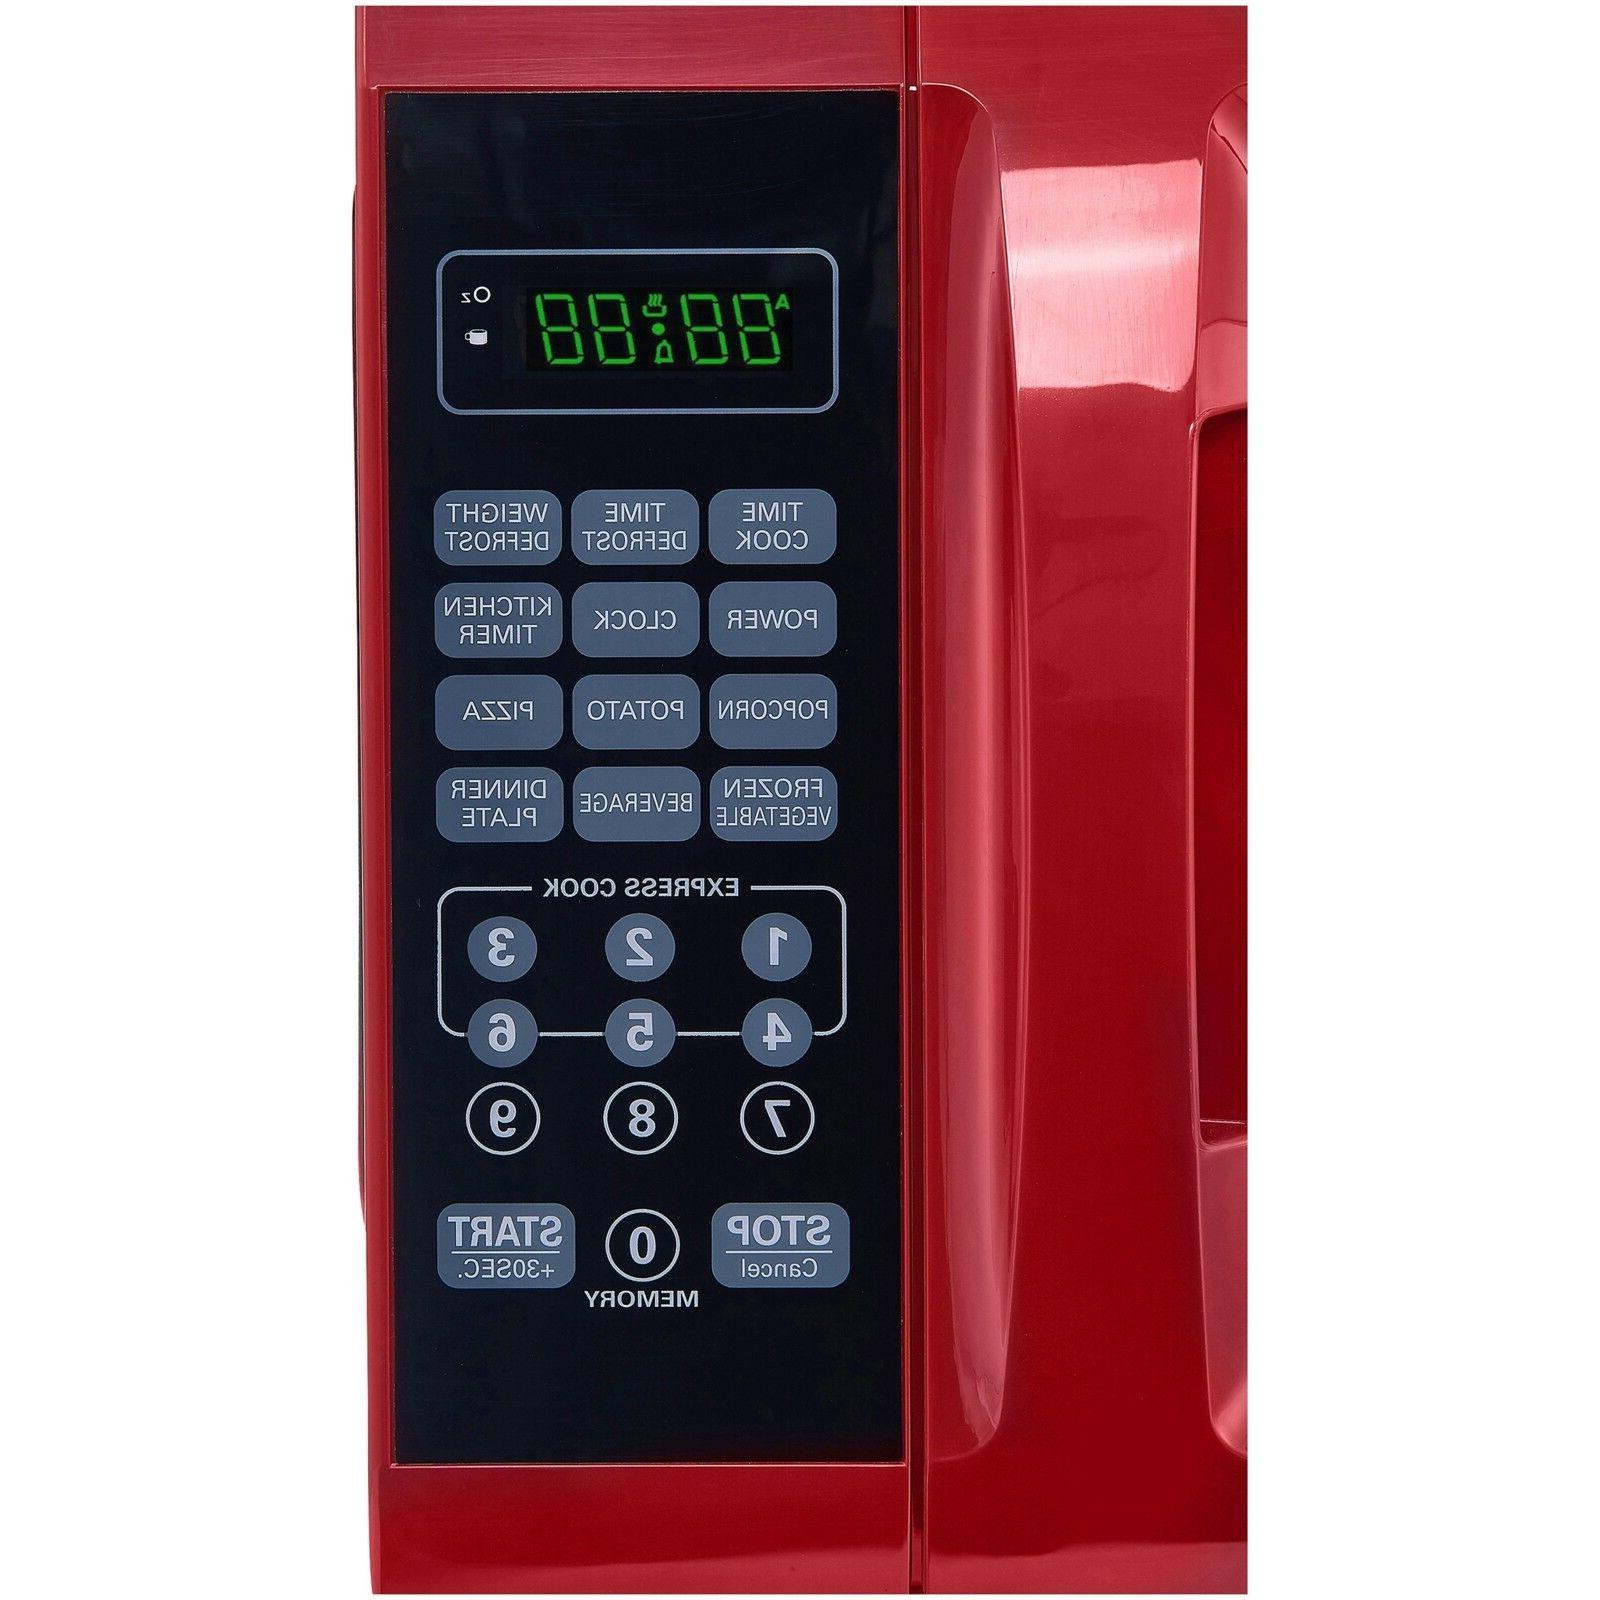 Microwave Removable Turntable, Red